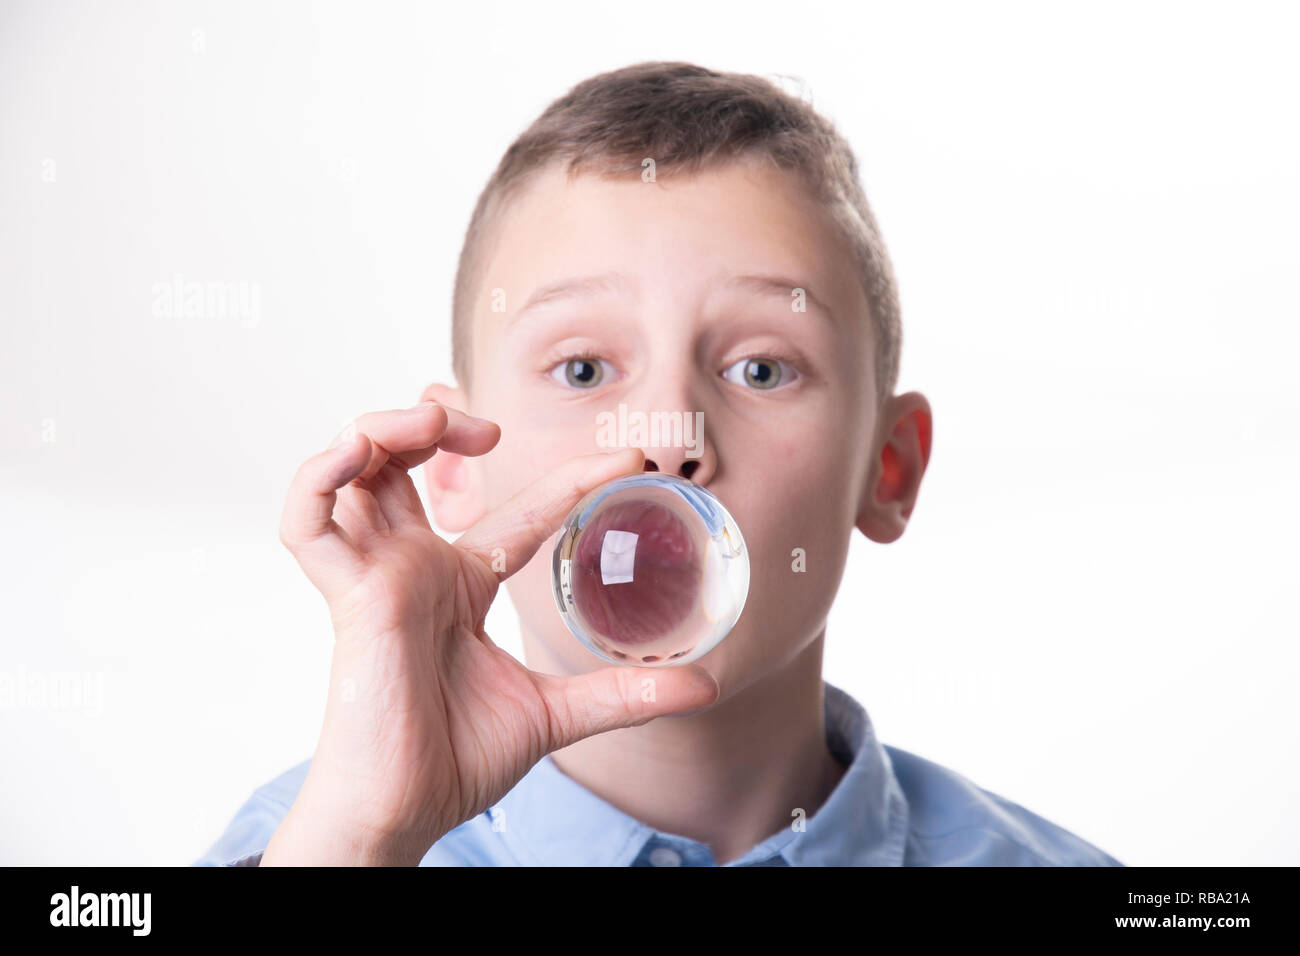 Future - boy breathes into a glass ball directly in front of his mouth isolated on white background Stock Photo